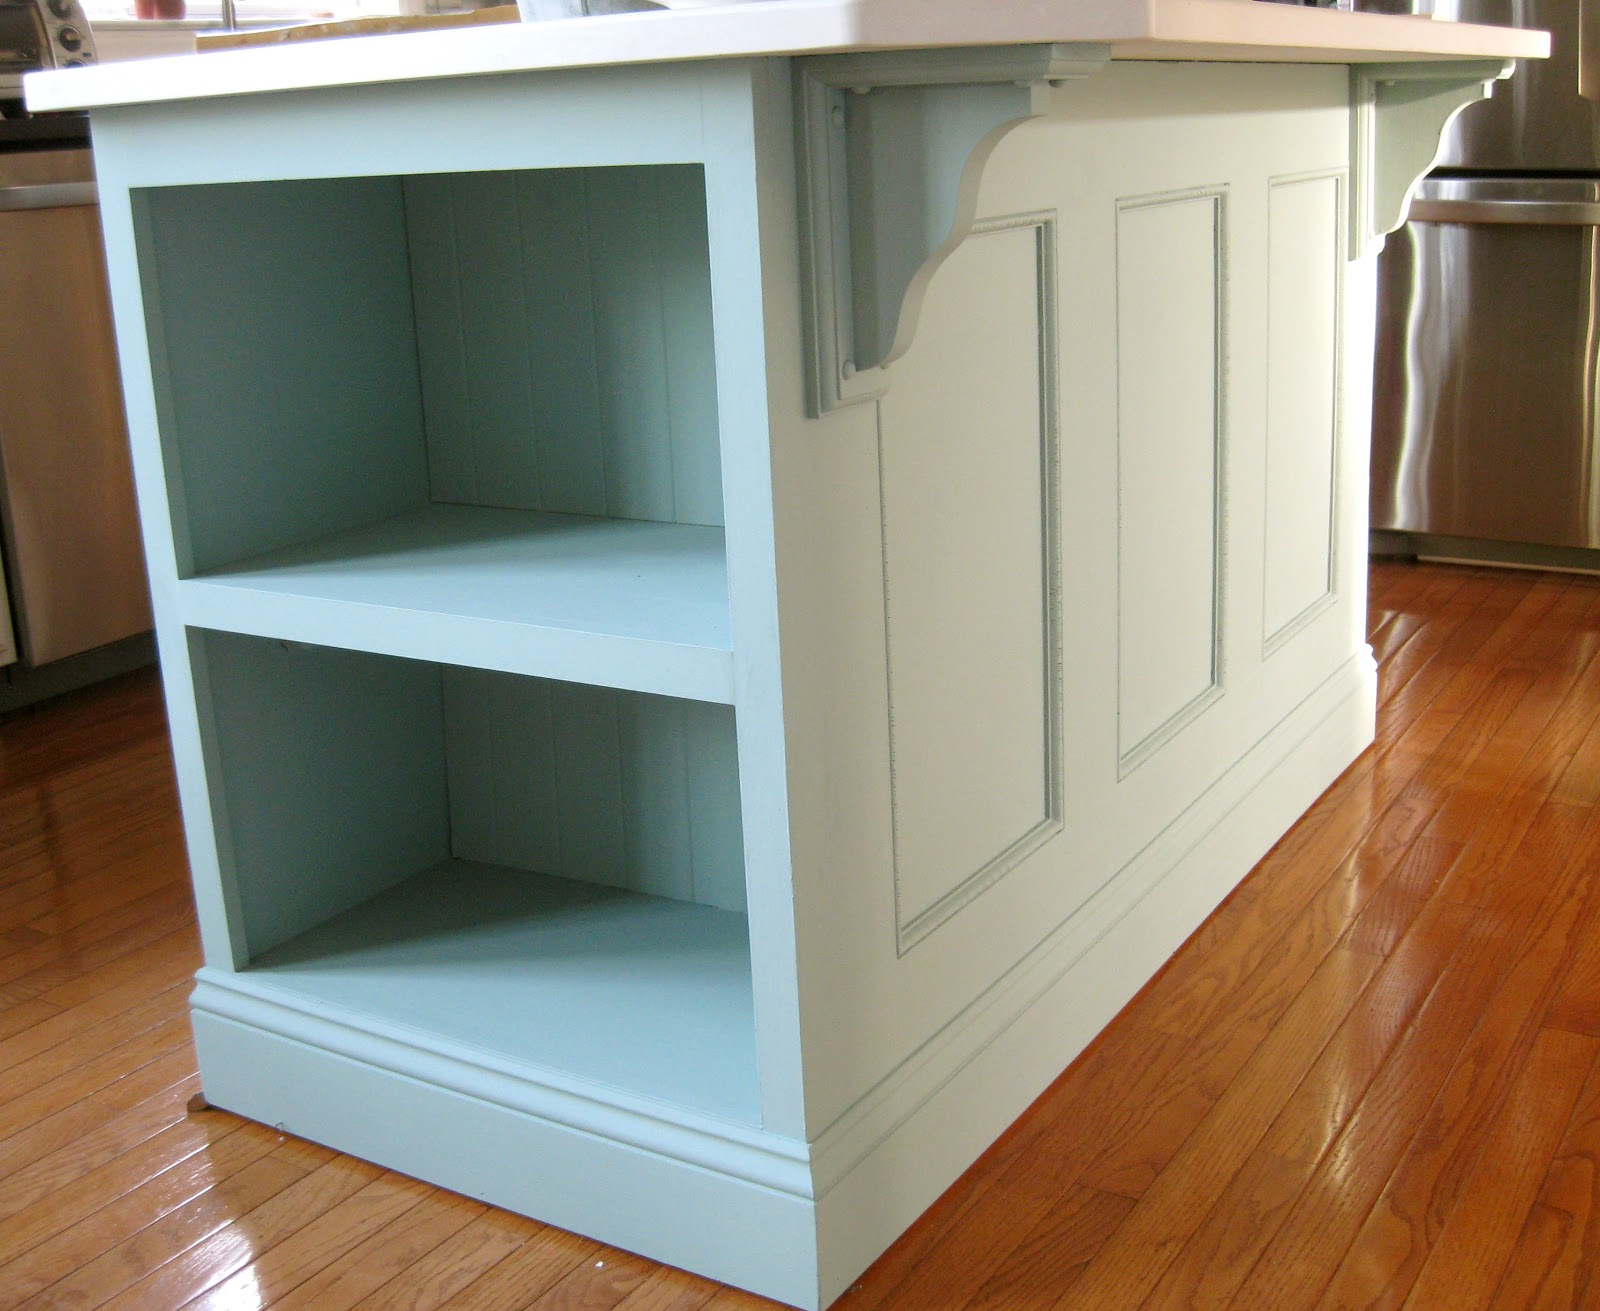 Remodelando la Casa Kitchen Island Painted ASCP Duck Egg Blue